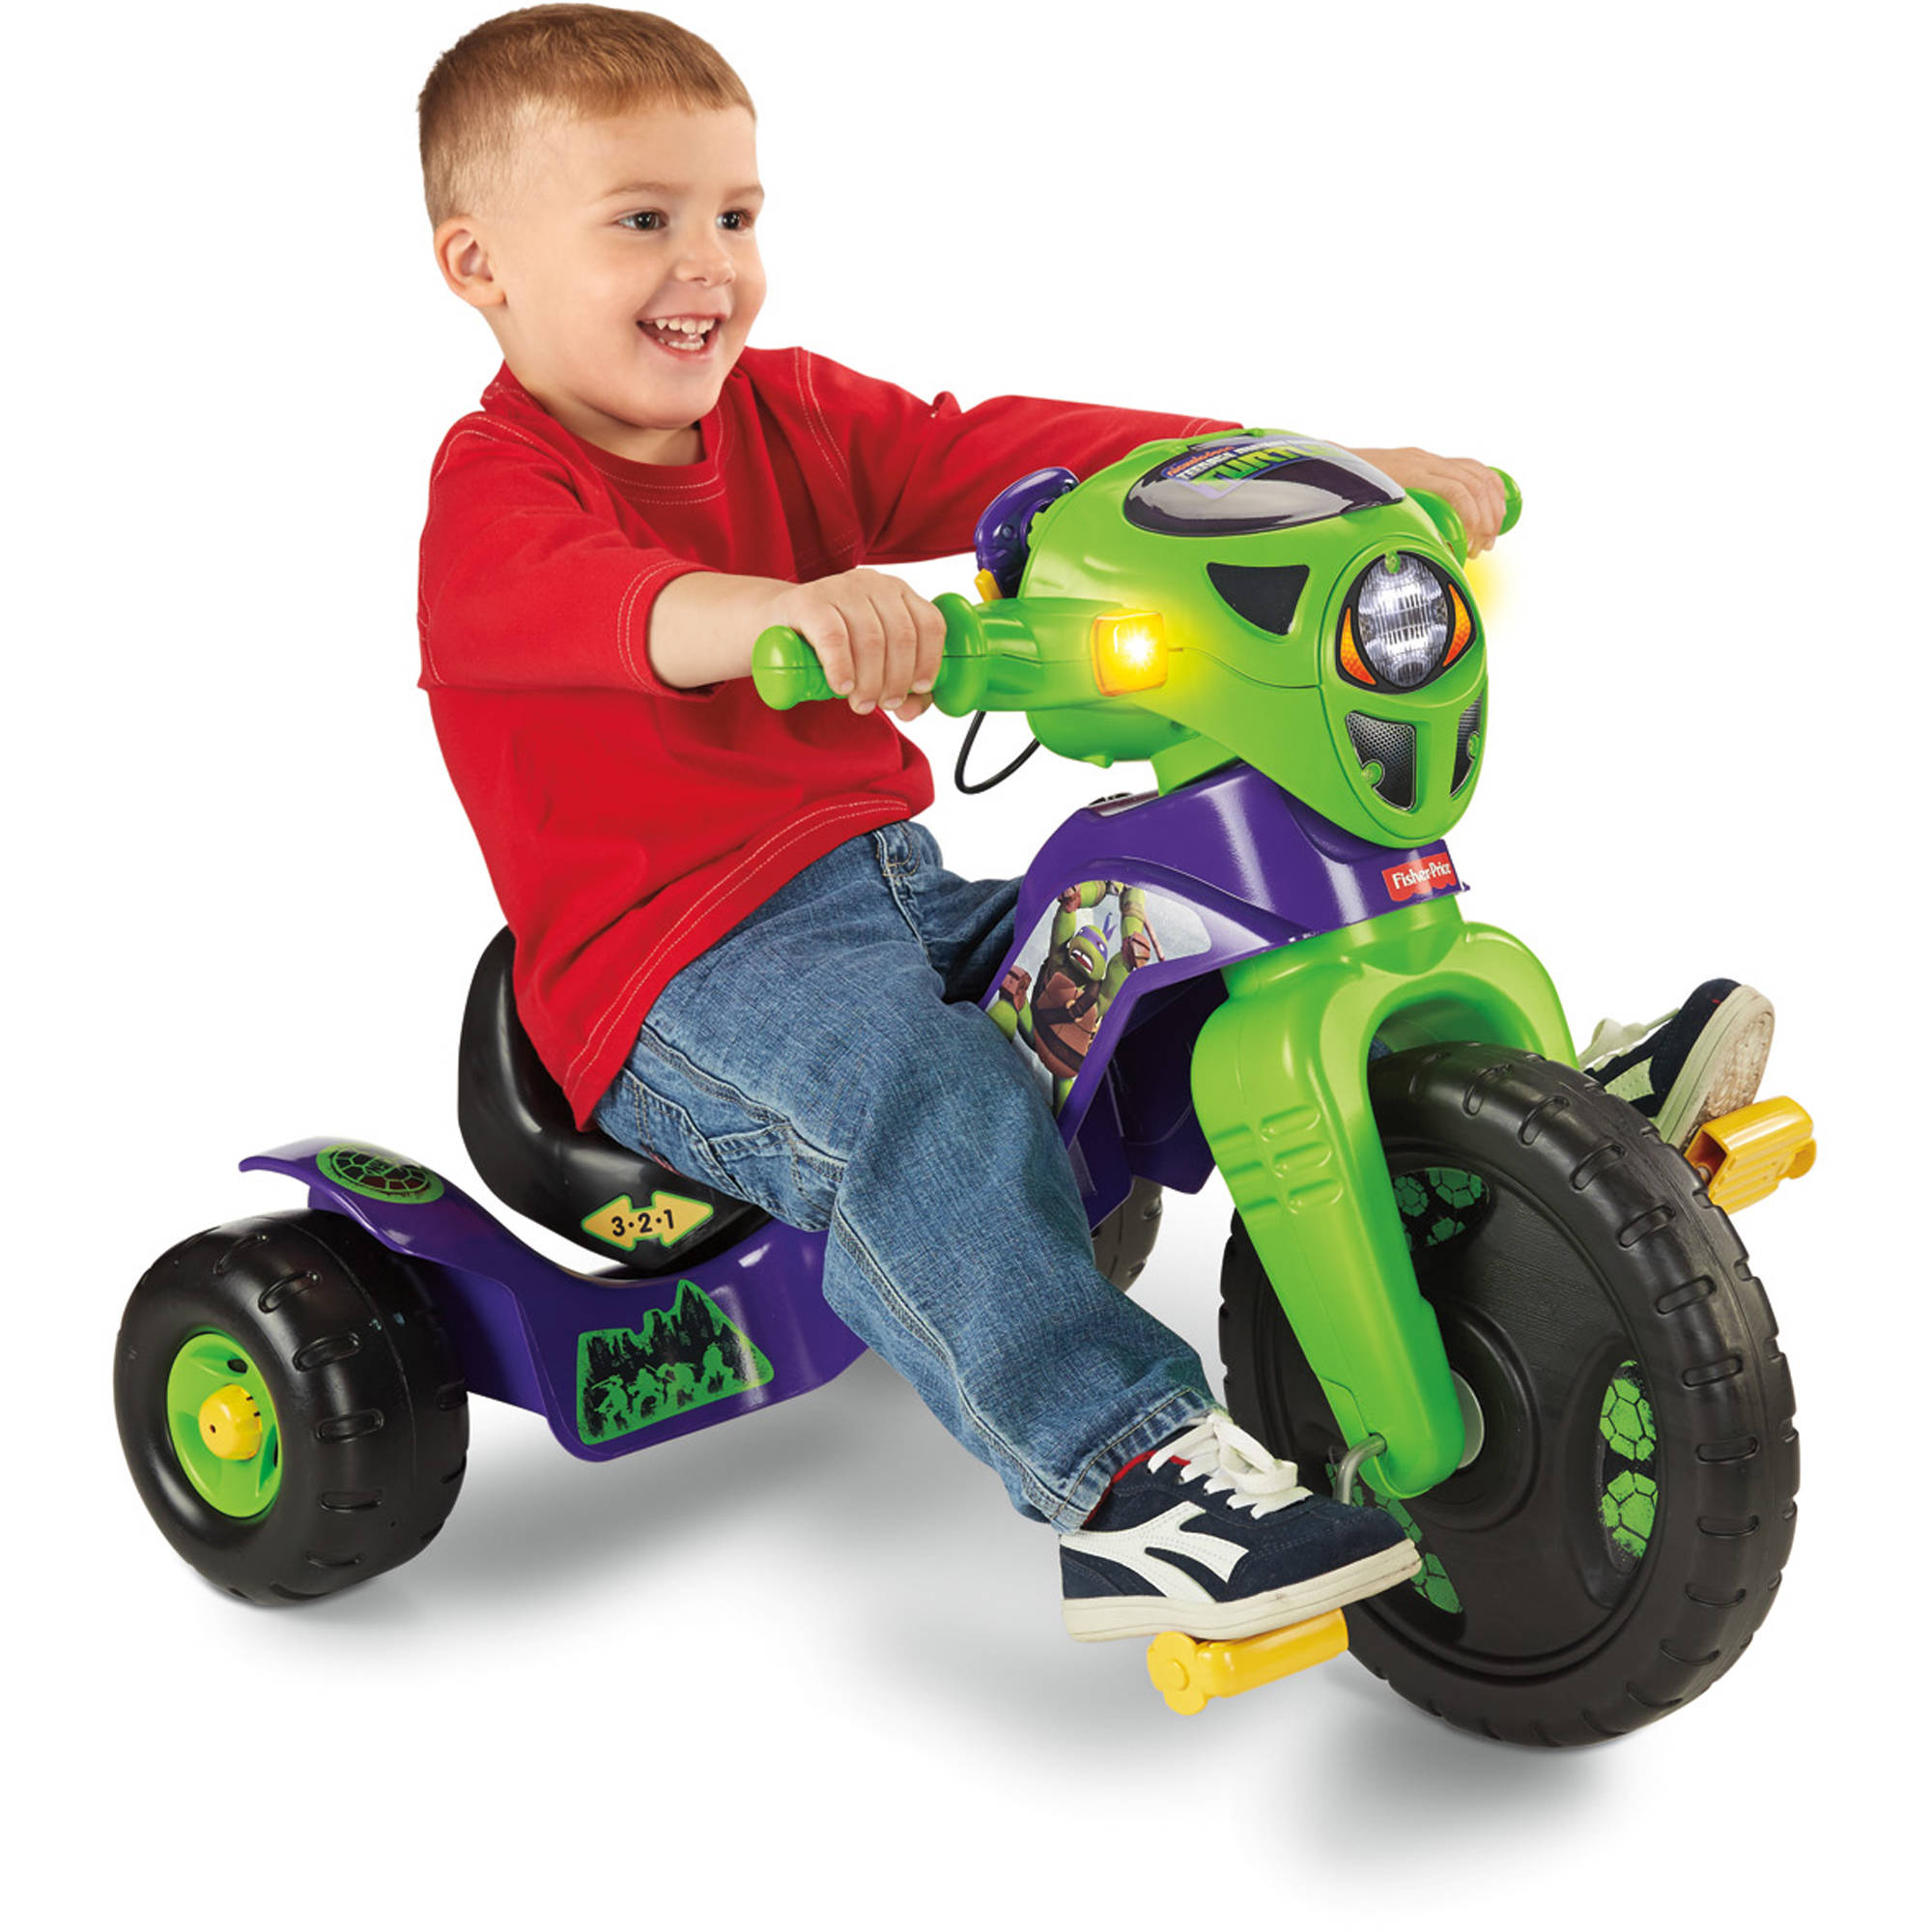 Fisher-Price Lights & Sounds Teenage Mutant Ninja Turtles Pedal Ride-On Trike